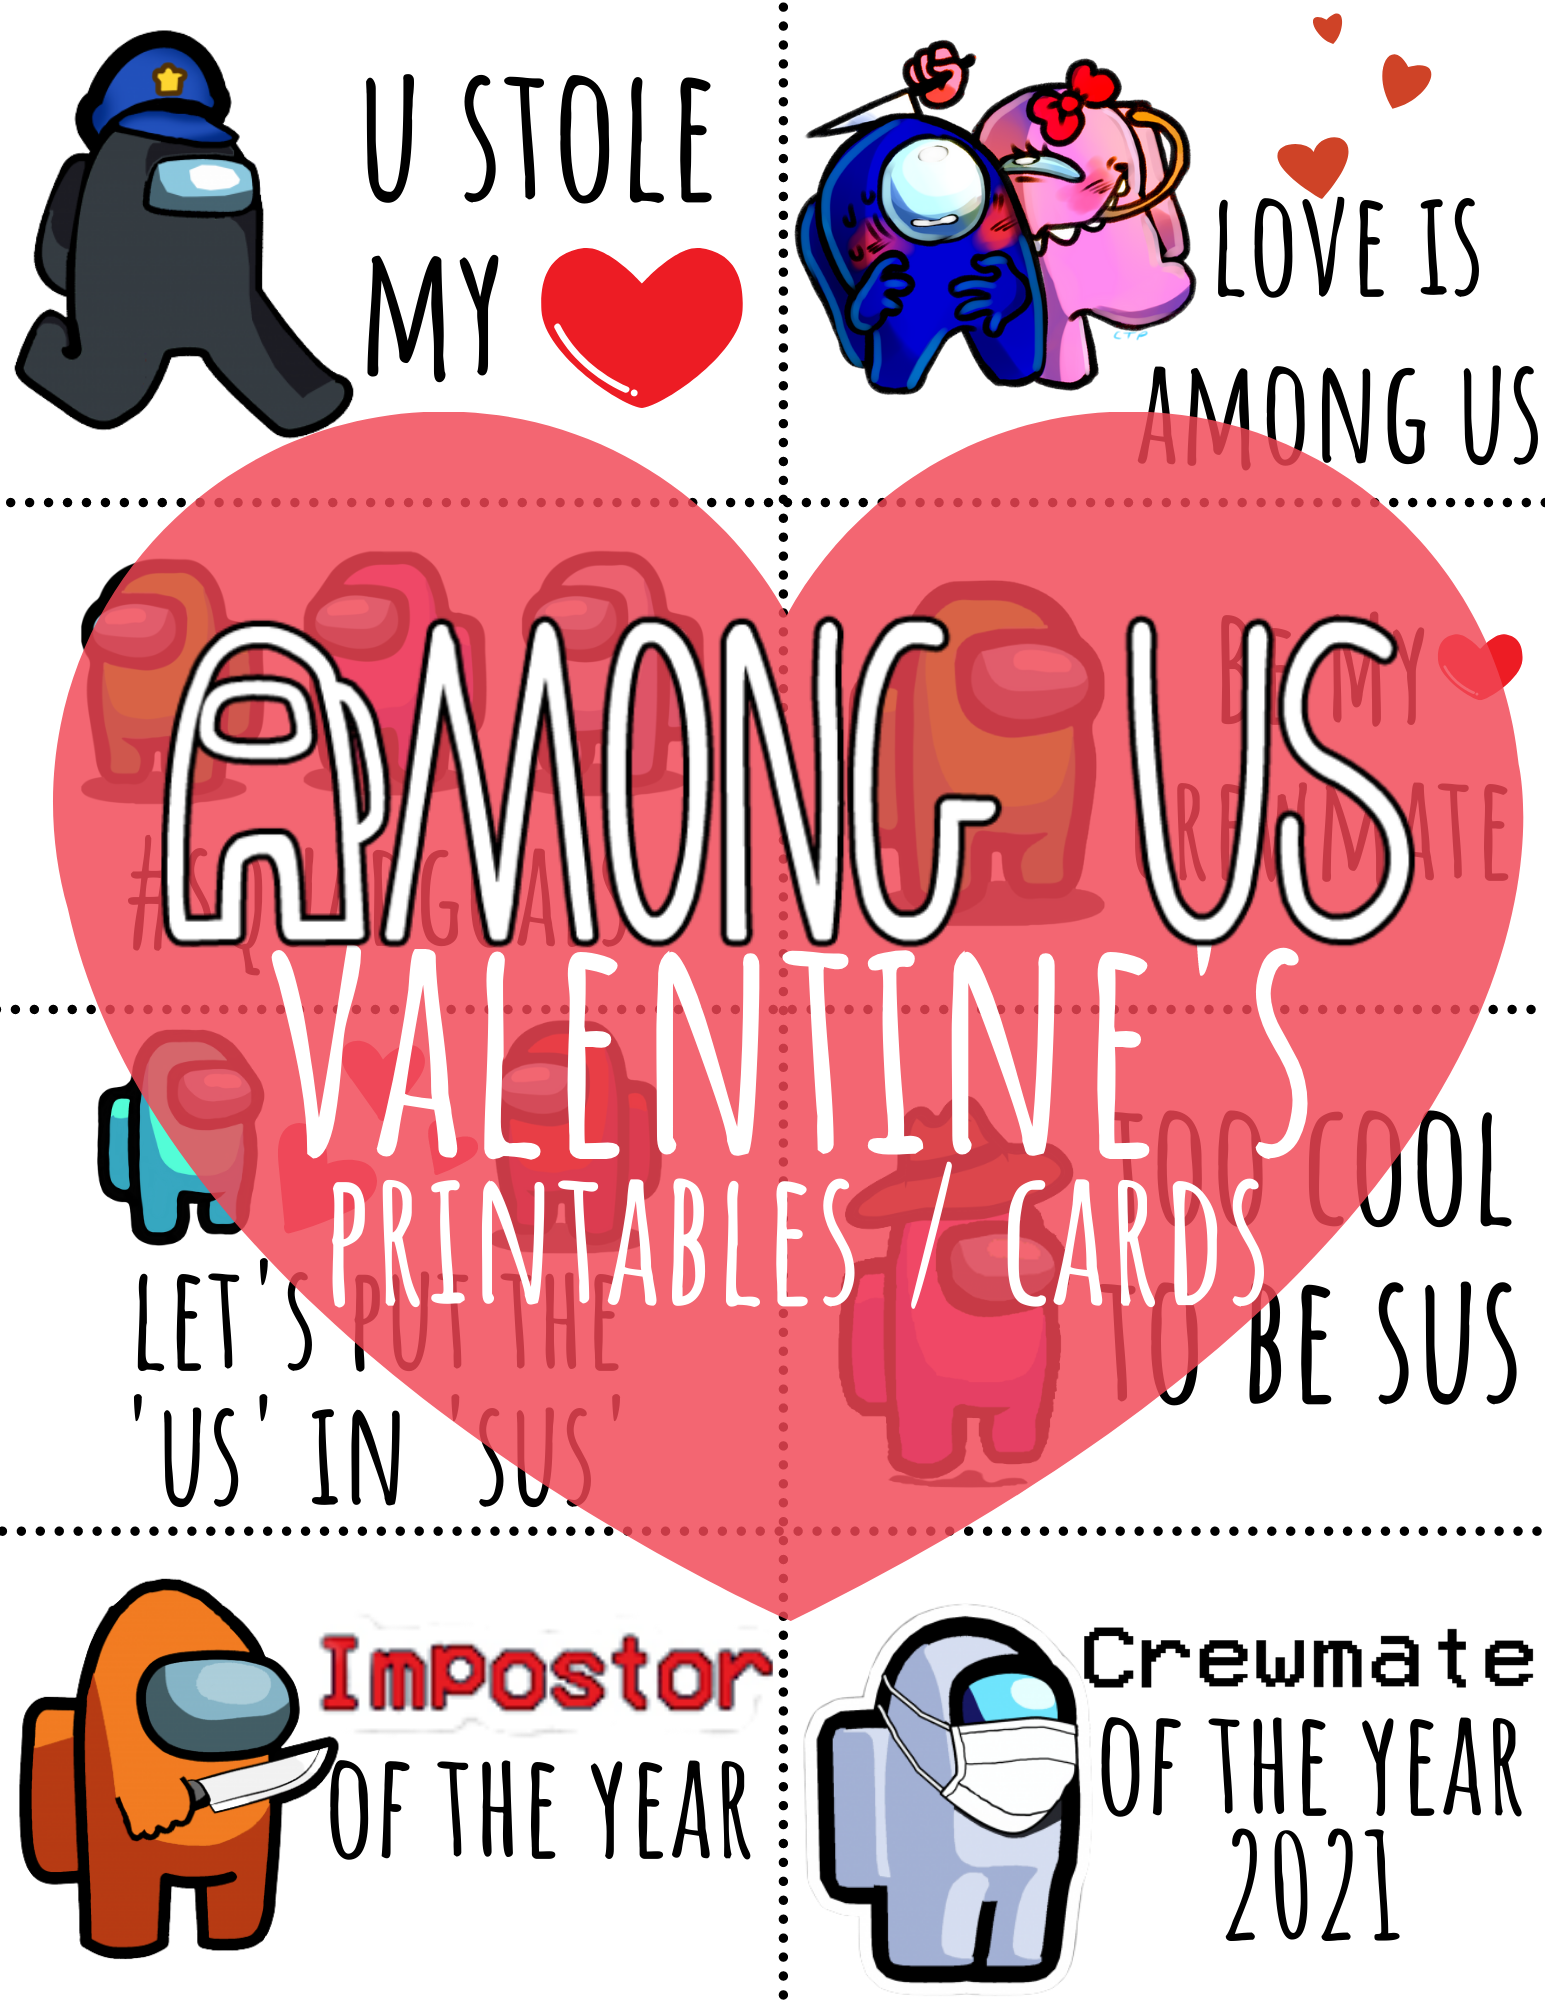 FREE Among Us Valentine's Day Printables and Cards featuring Let's Put the Us in Sus and Love is Among Us and Too Cool To Be Sus and more!